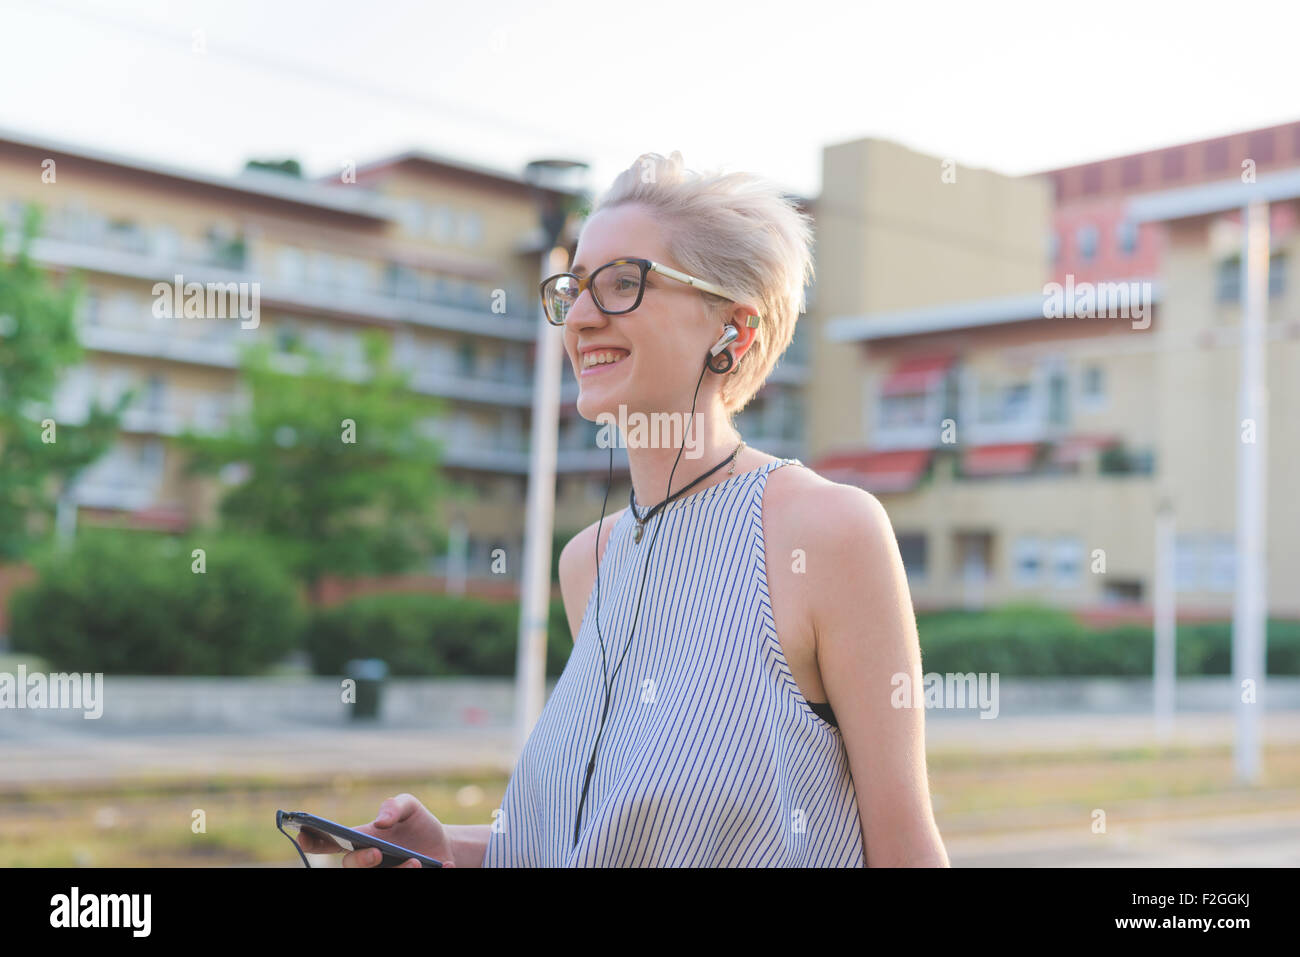 half length of young handsome caucasian blonde designer listening music with earphones, overlooking right, smiling - Stock Image